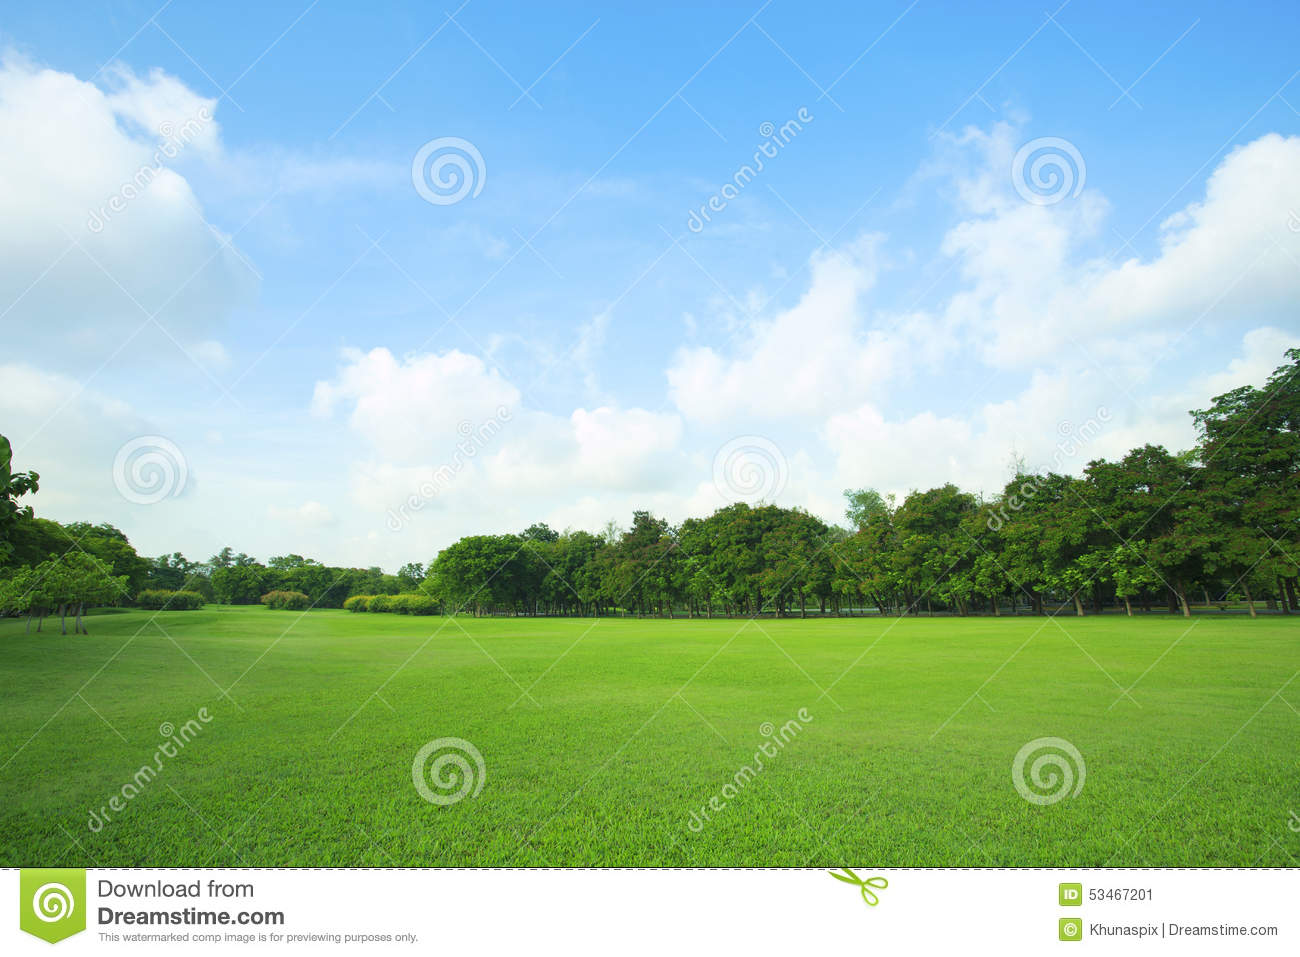 Beautiful green grass field and fresh plant in vibrant for Pretty grass